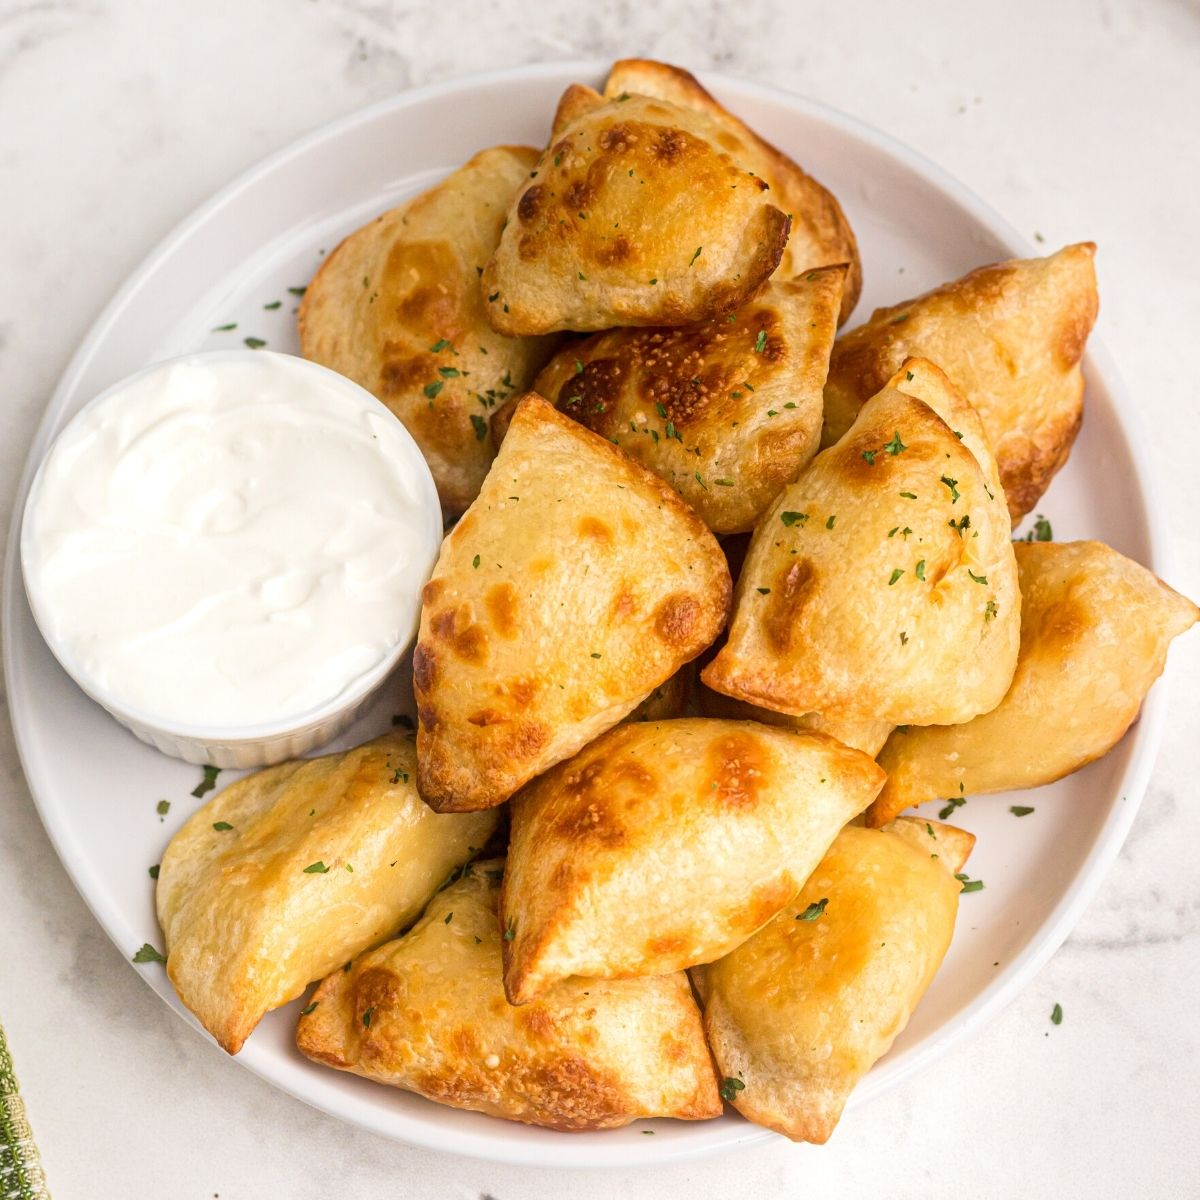 Golden and puffy, cooked pierogies served on a white plate with a side of sour cream.